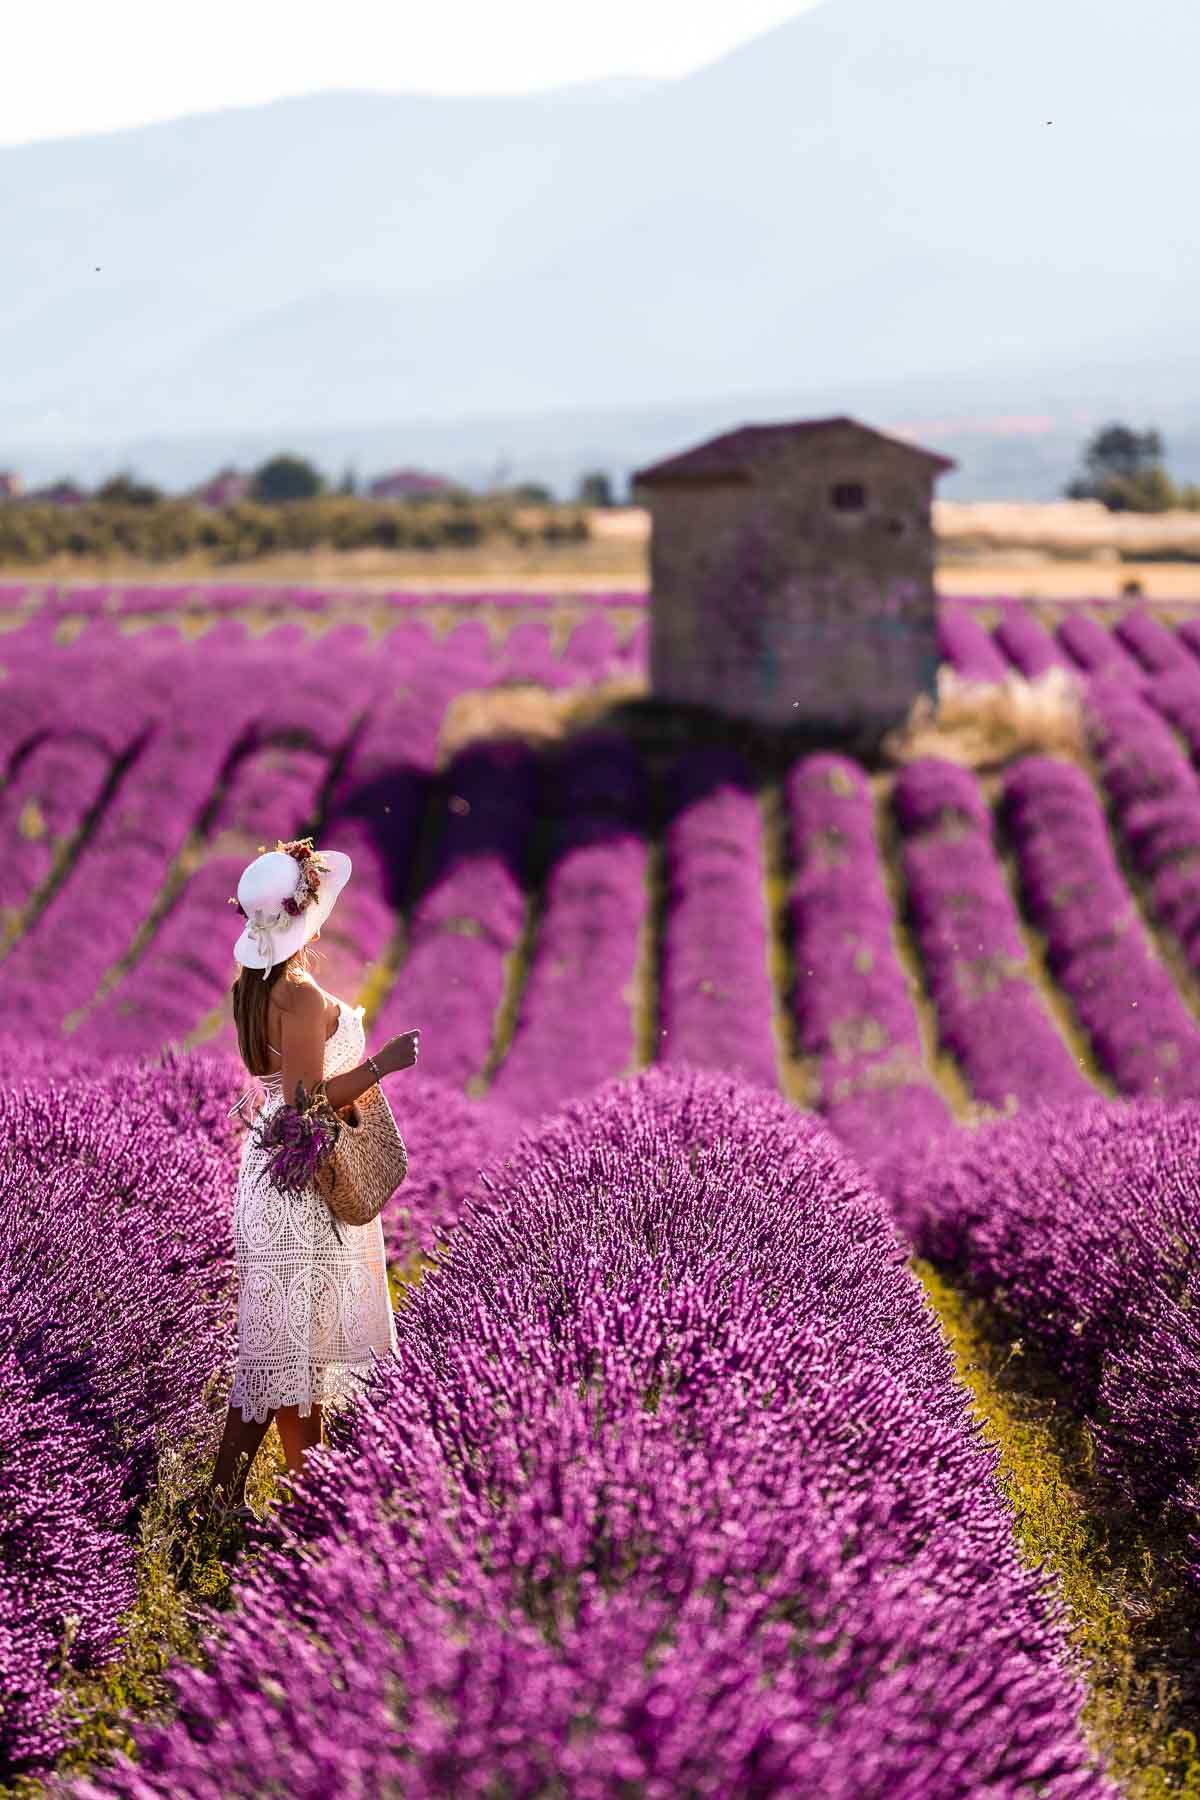 Girl in a white dress standing in the lavender fields in Provence, France